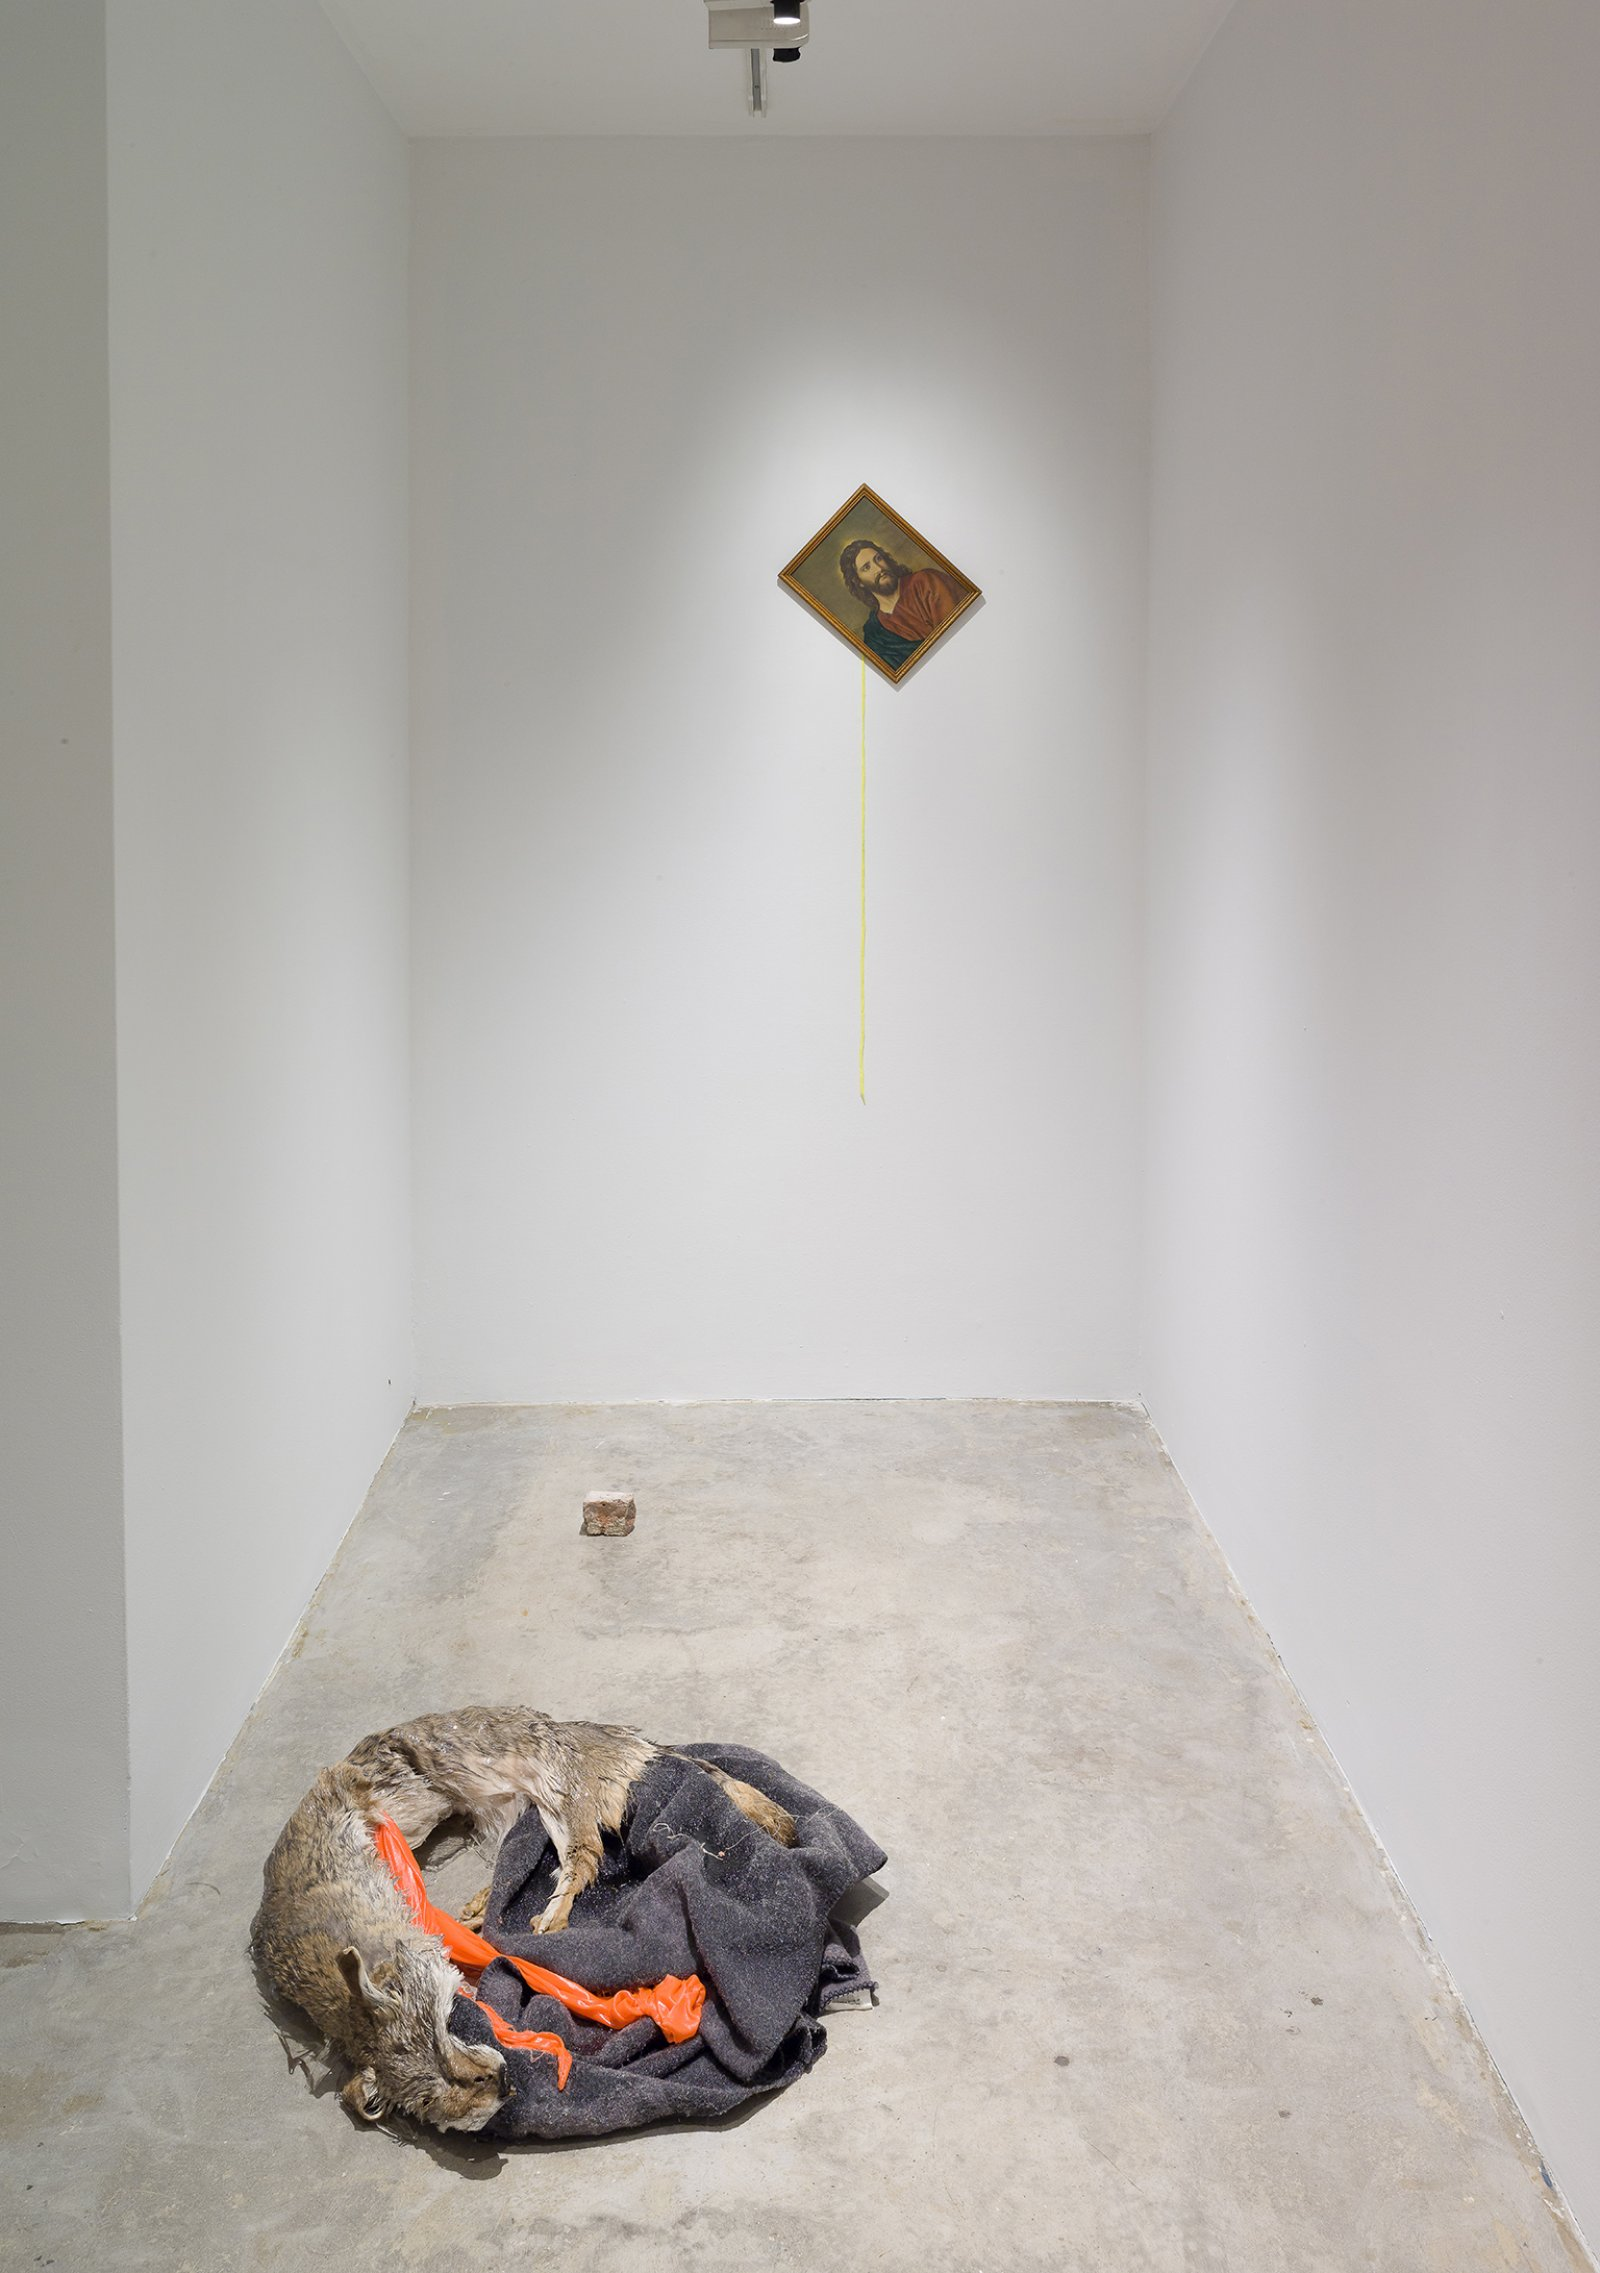 Duane Linklater, Torpor, 2016, coyote fur, wool blanket, polyester cloth, resin, found picture, shoelace, brick, dimensions variable by Duane Linklater